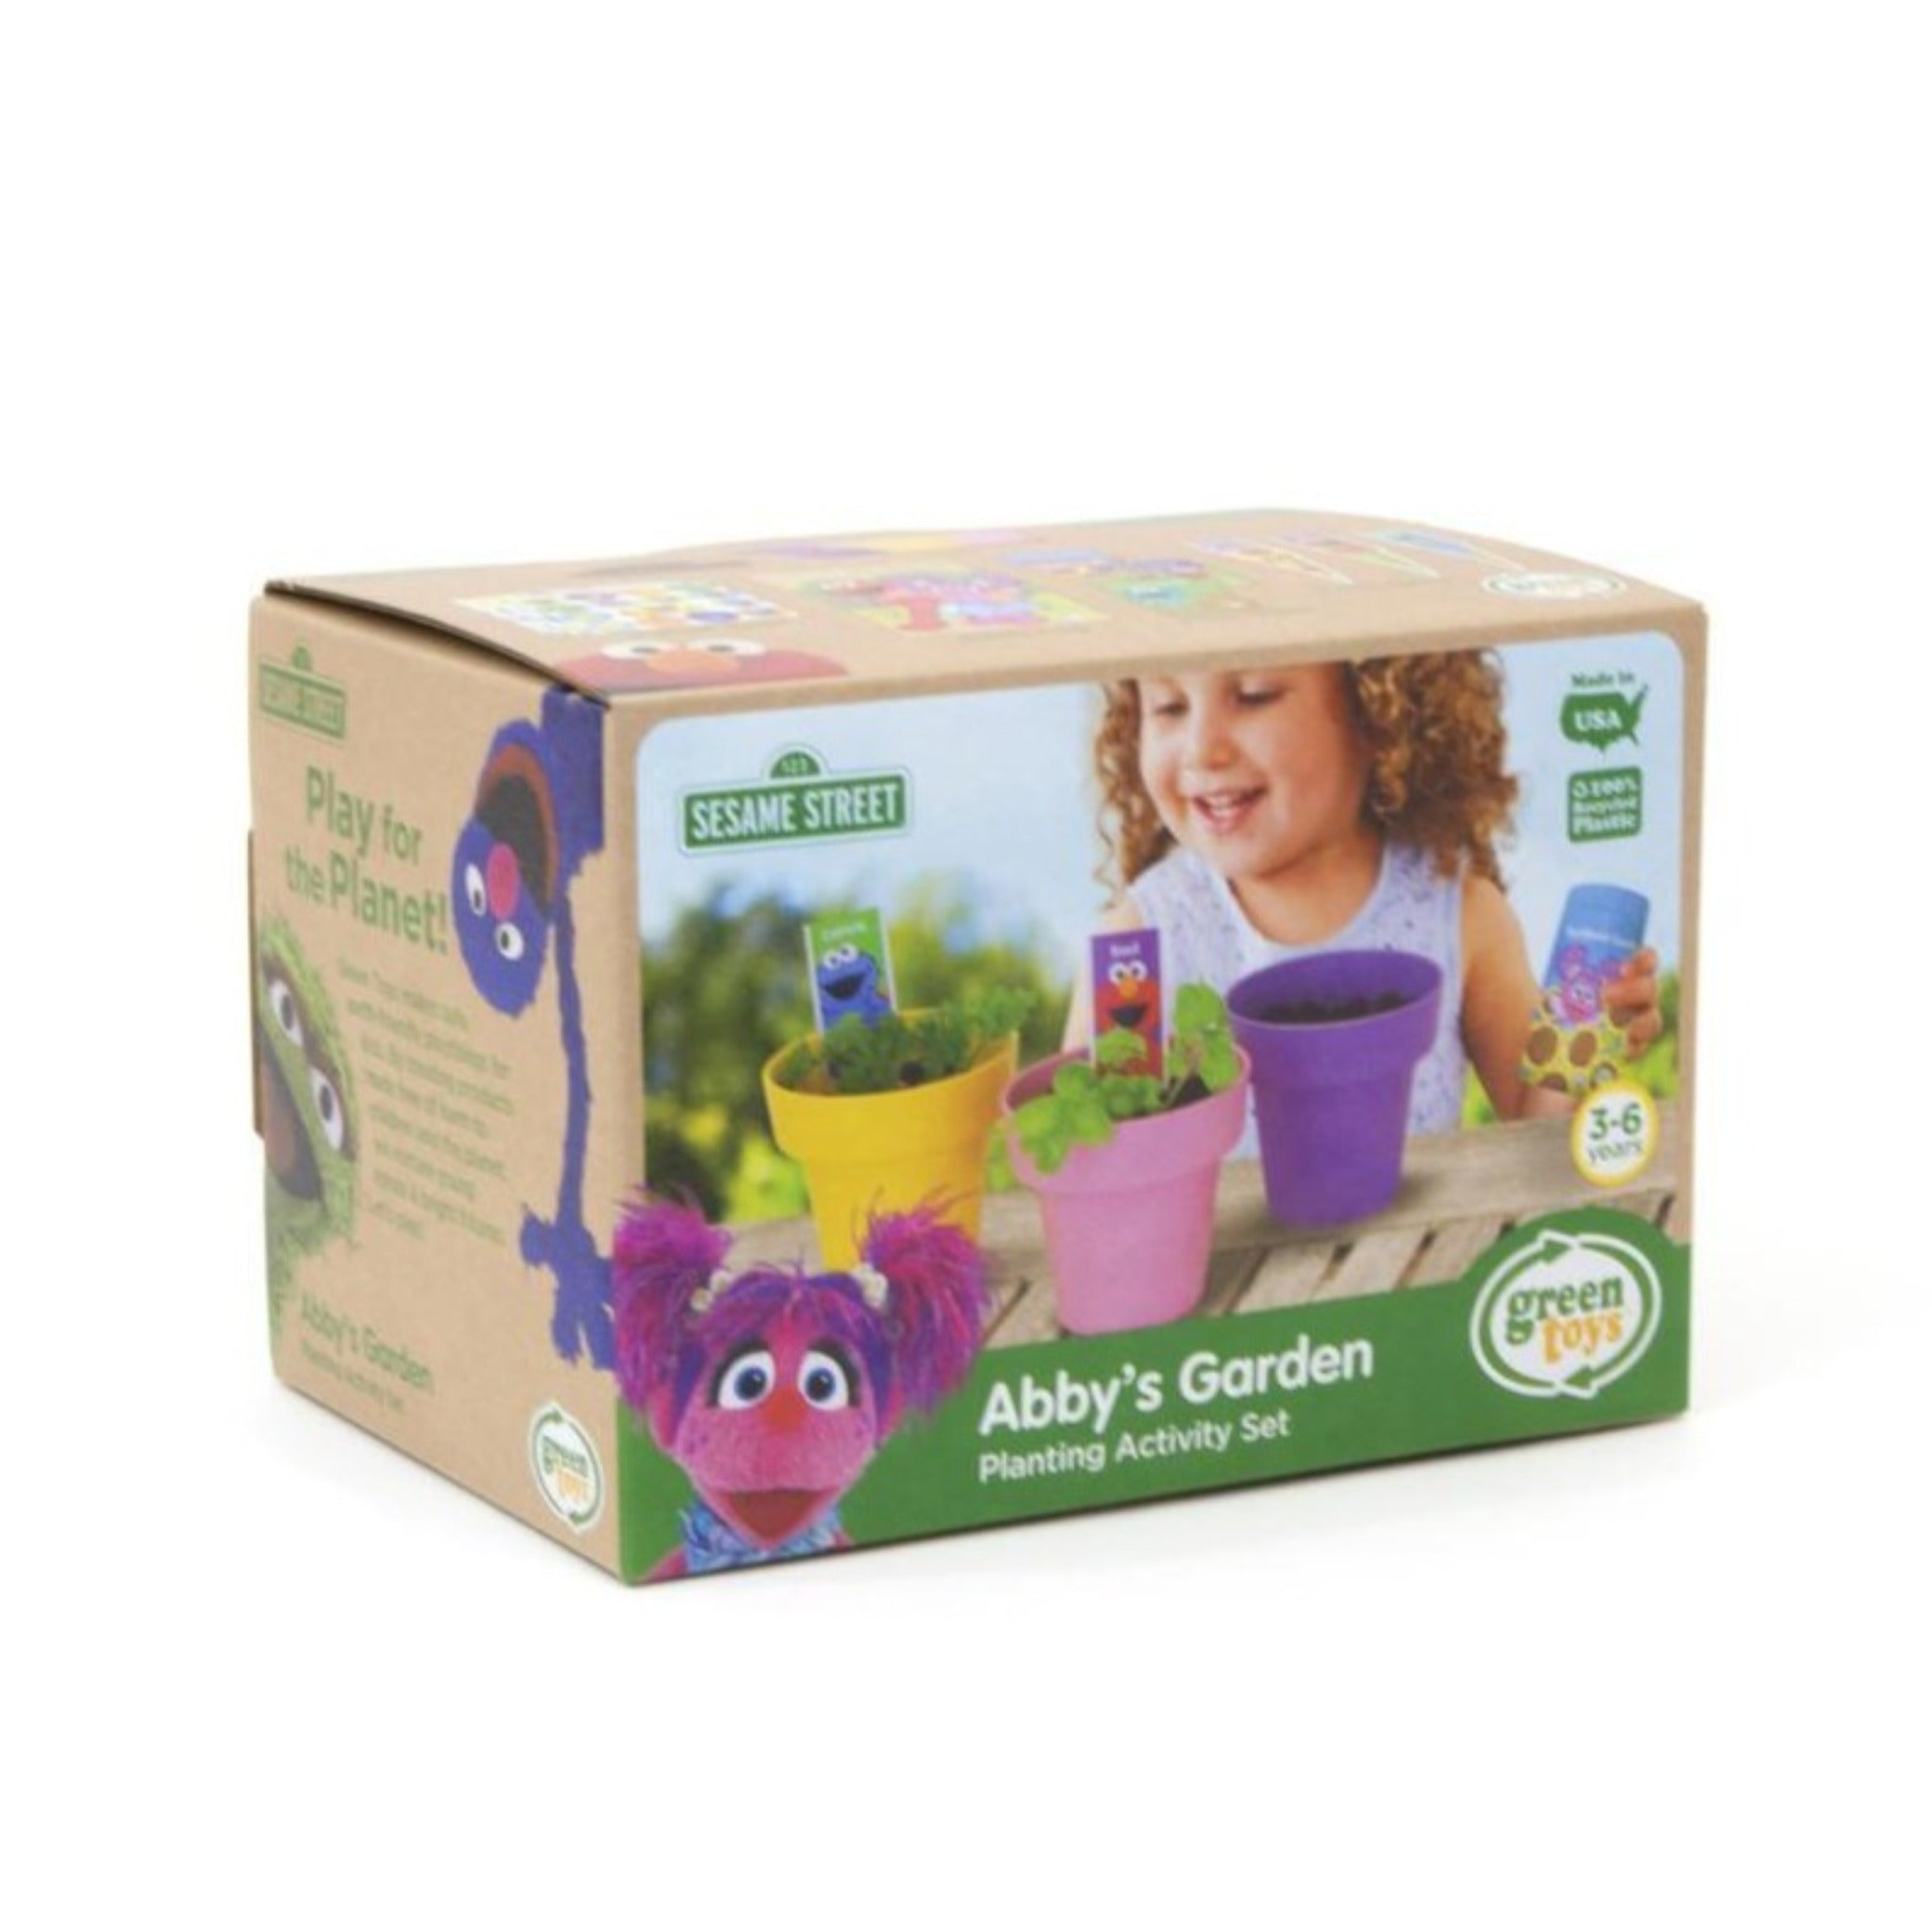 Green Toys sesame street Abby's garden planting activity set